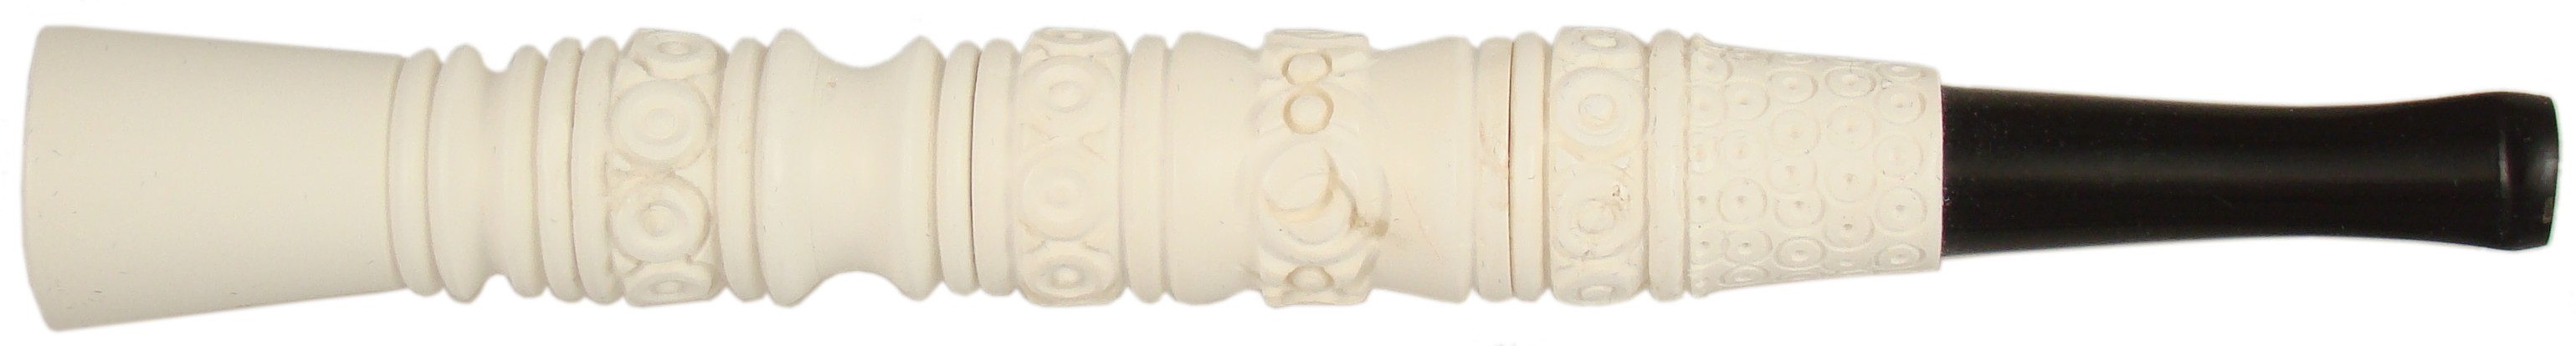 CIG03 - 3 Section Meerschaum Tobacco Cigarette Holder / Bat